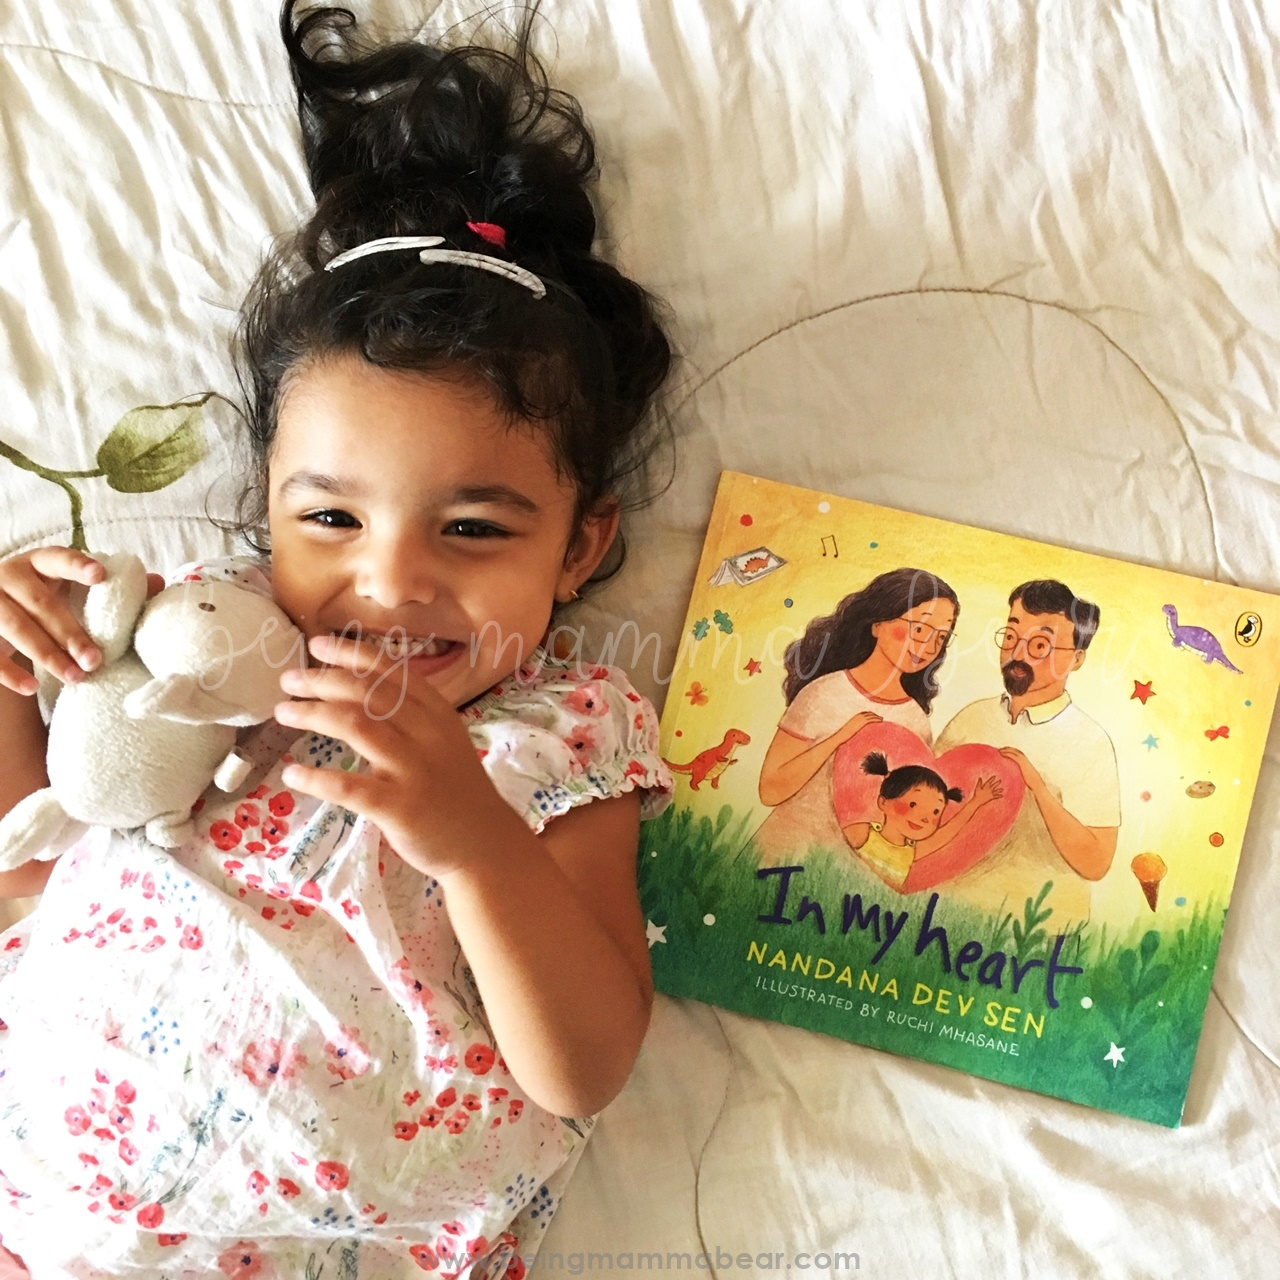 Being Mamma Bear Book Review In My Heart Nandana Dev Sen Ruchi Mhasane Puffin Books Penguin Random House - 6